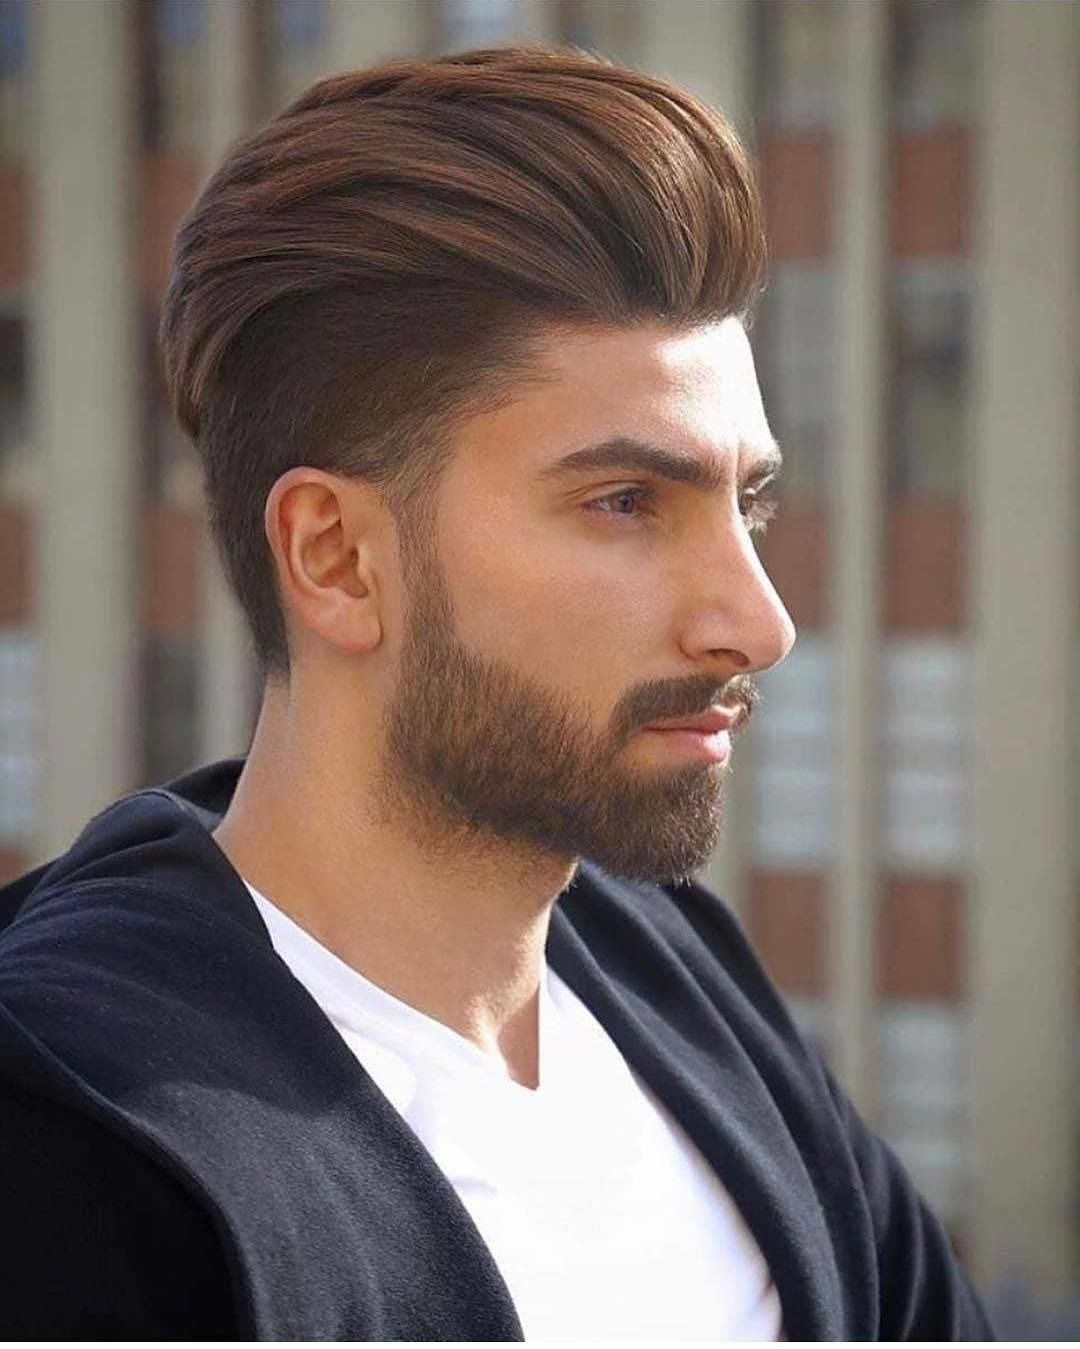 15 Cool Undercut Hairstyles For Men Men S Hairstyles Mens Hairstyles Undercut Undercut Hairstyles Undercut Long Hair